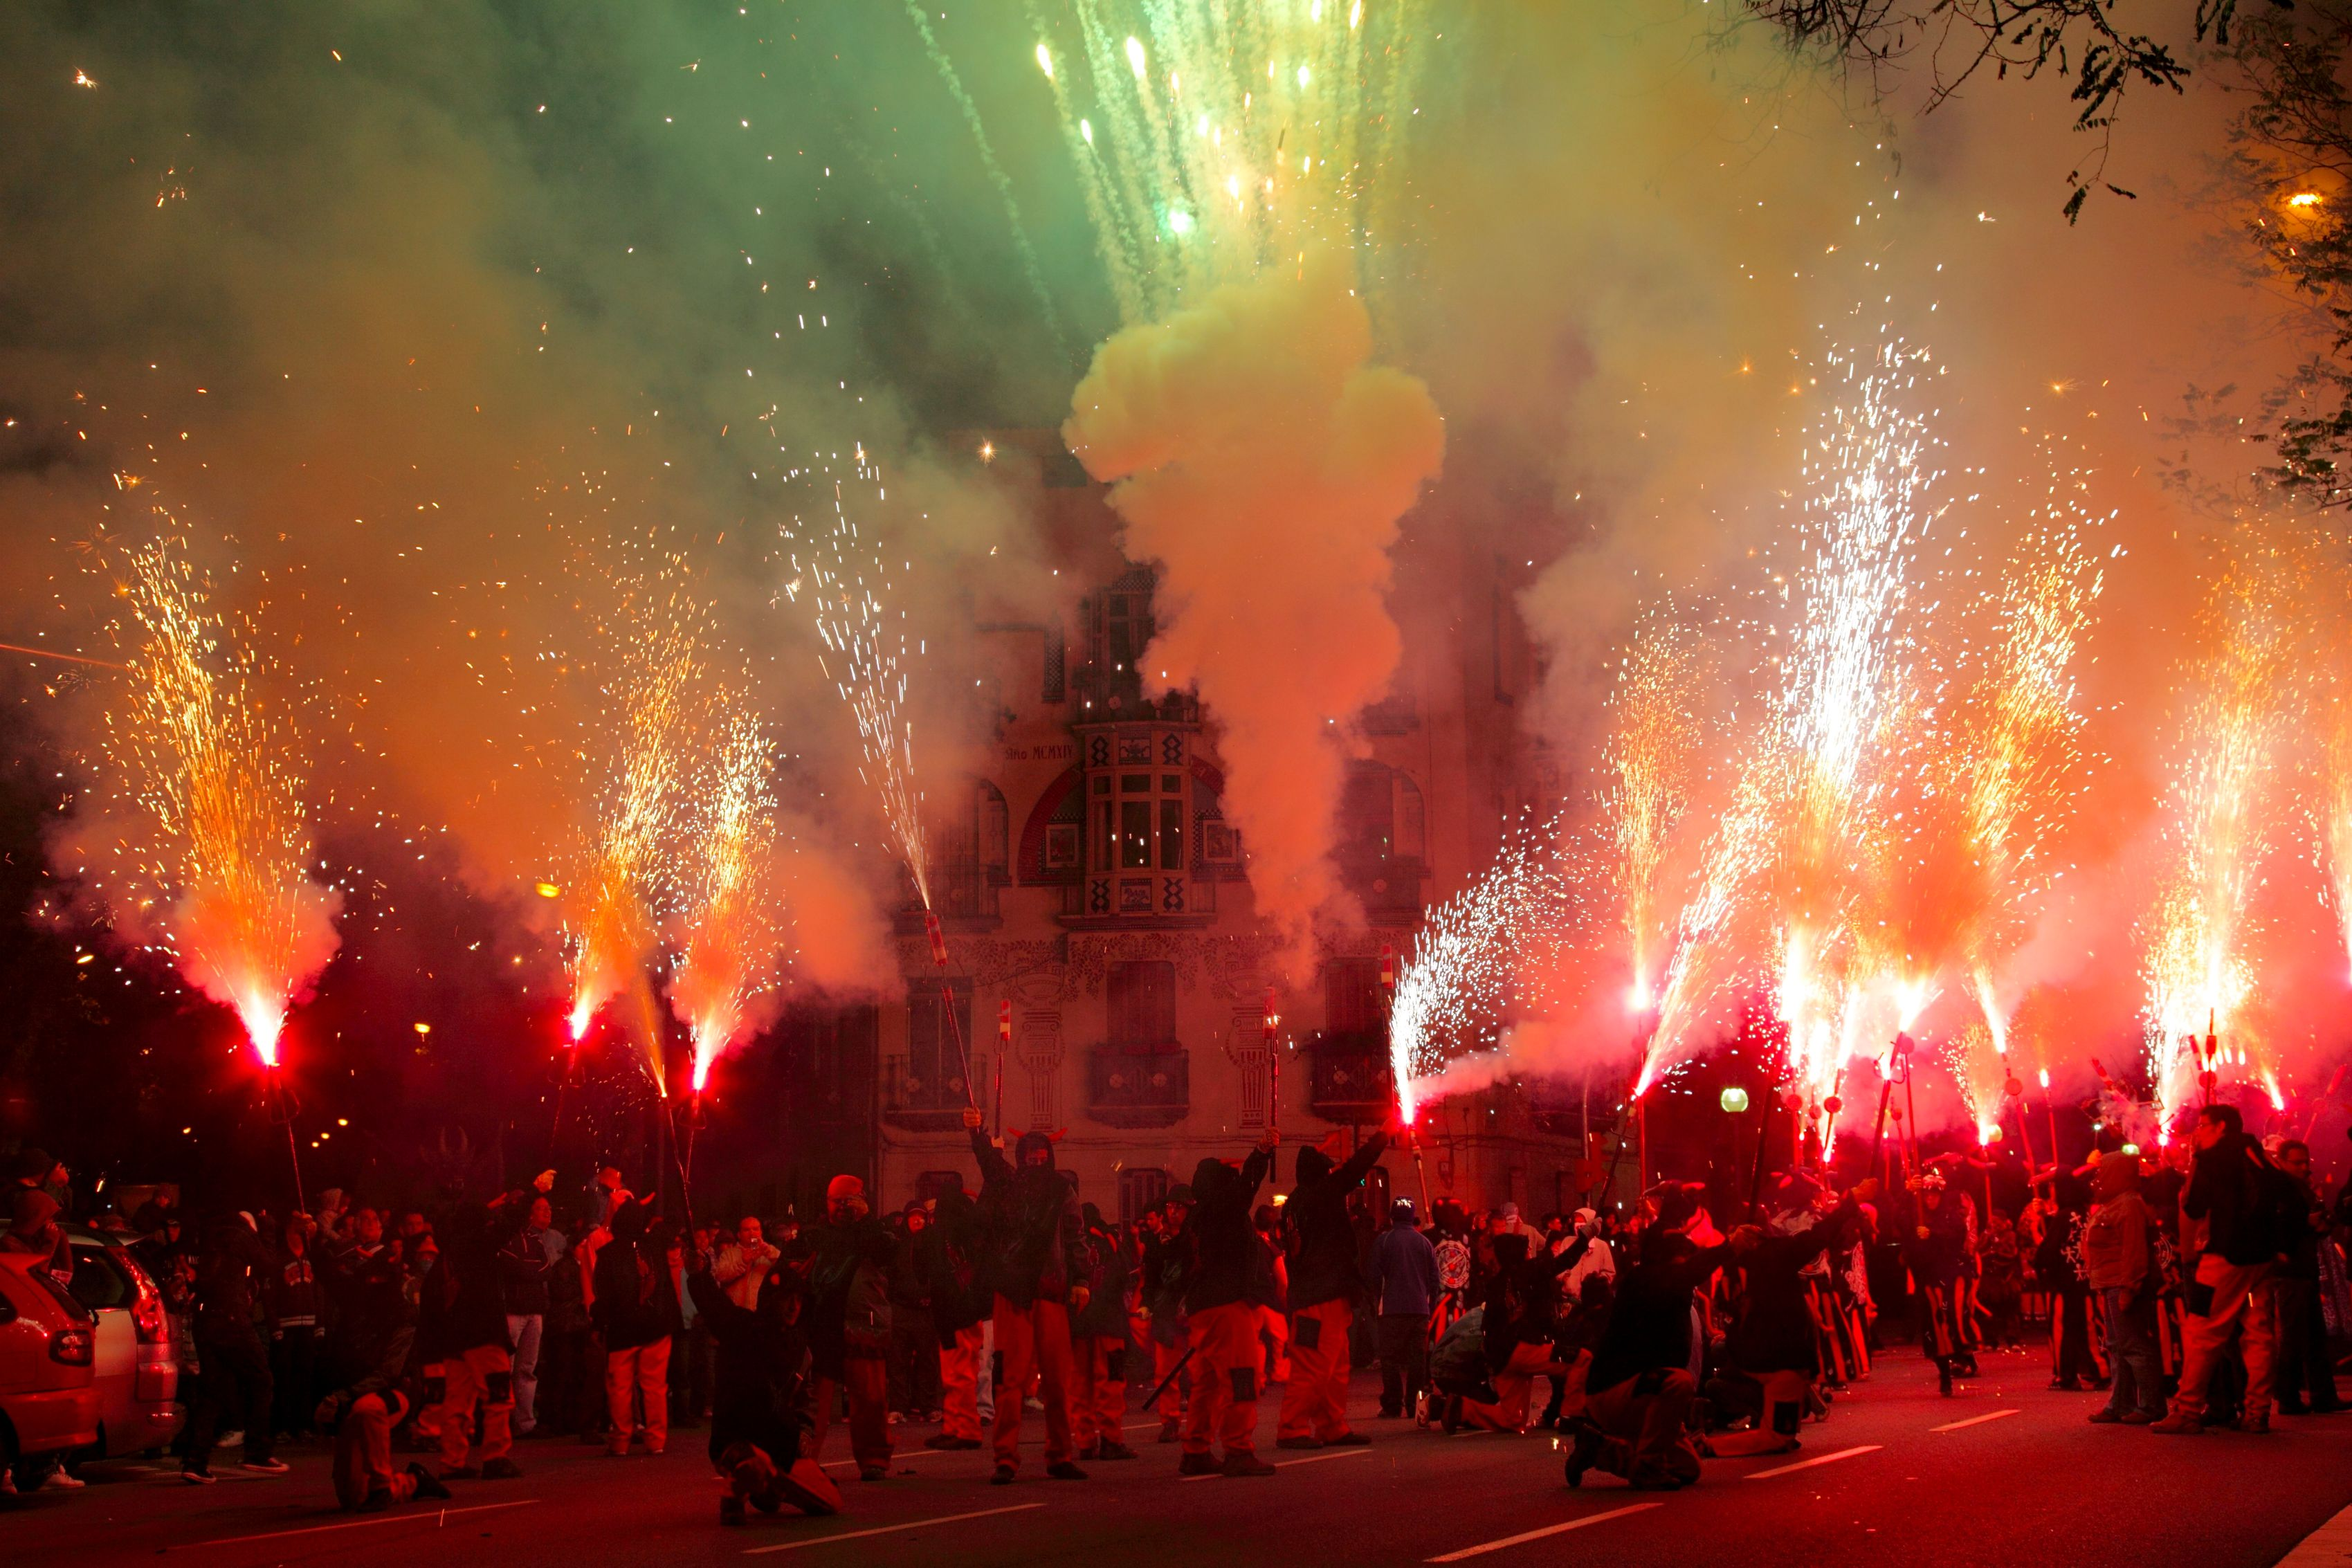 Diablo skies during Le Merce's Correfoc (Fire Run) in Barcelona.